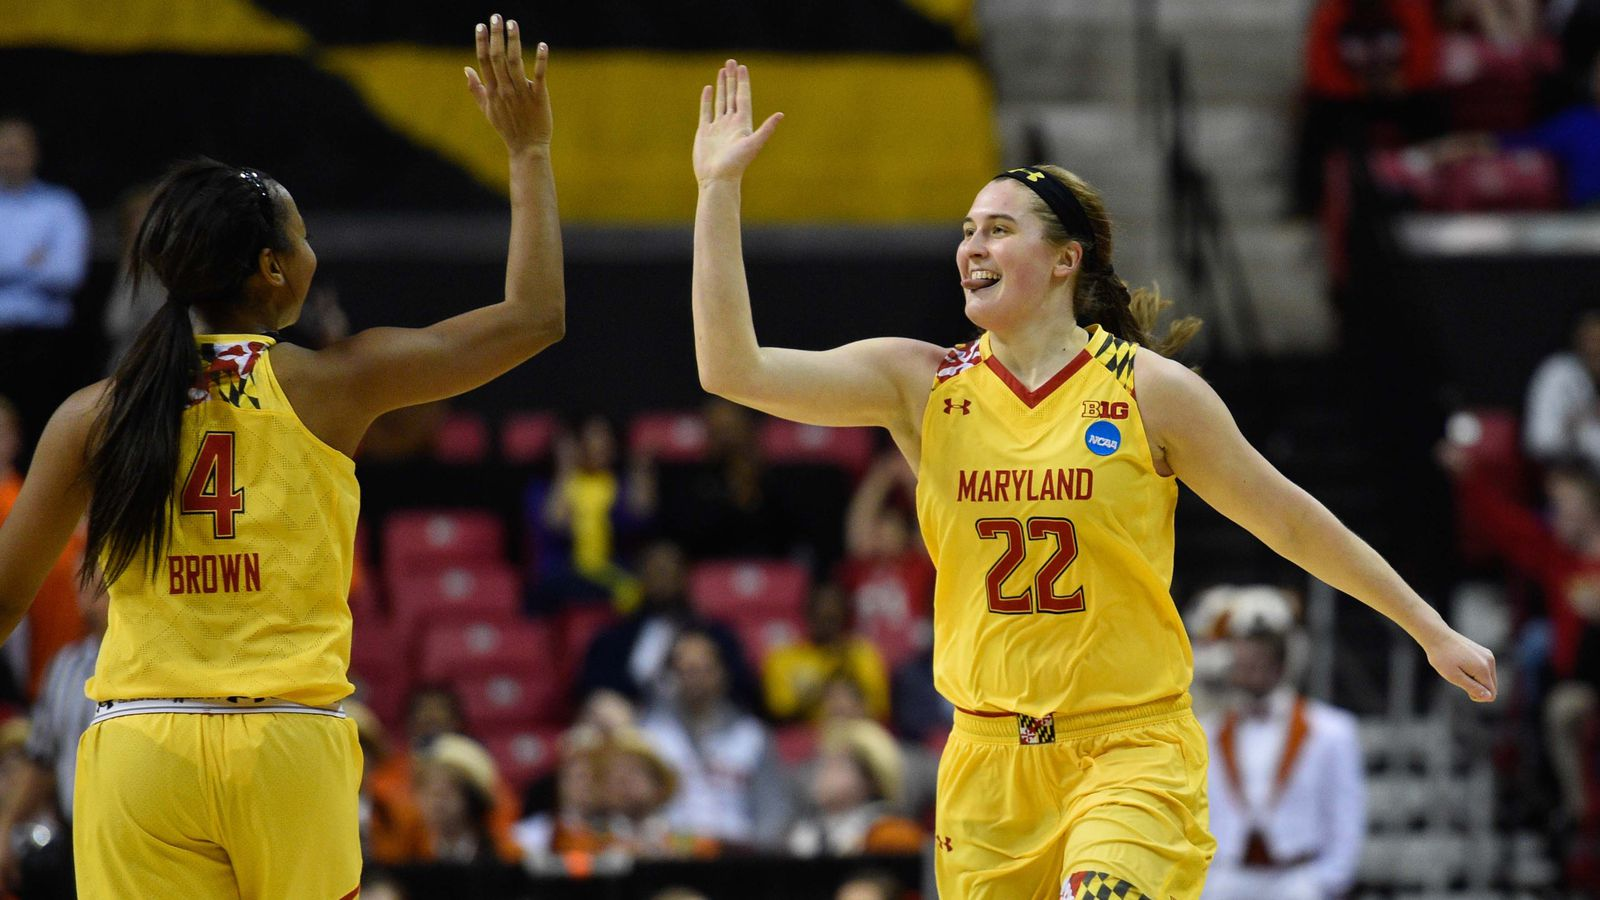 Maryland women's basketball: Sweet for the 13th time taming Tigers, 85-70 - Testudo Times